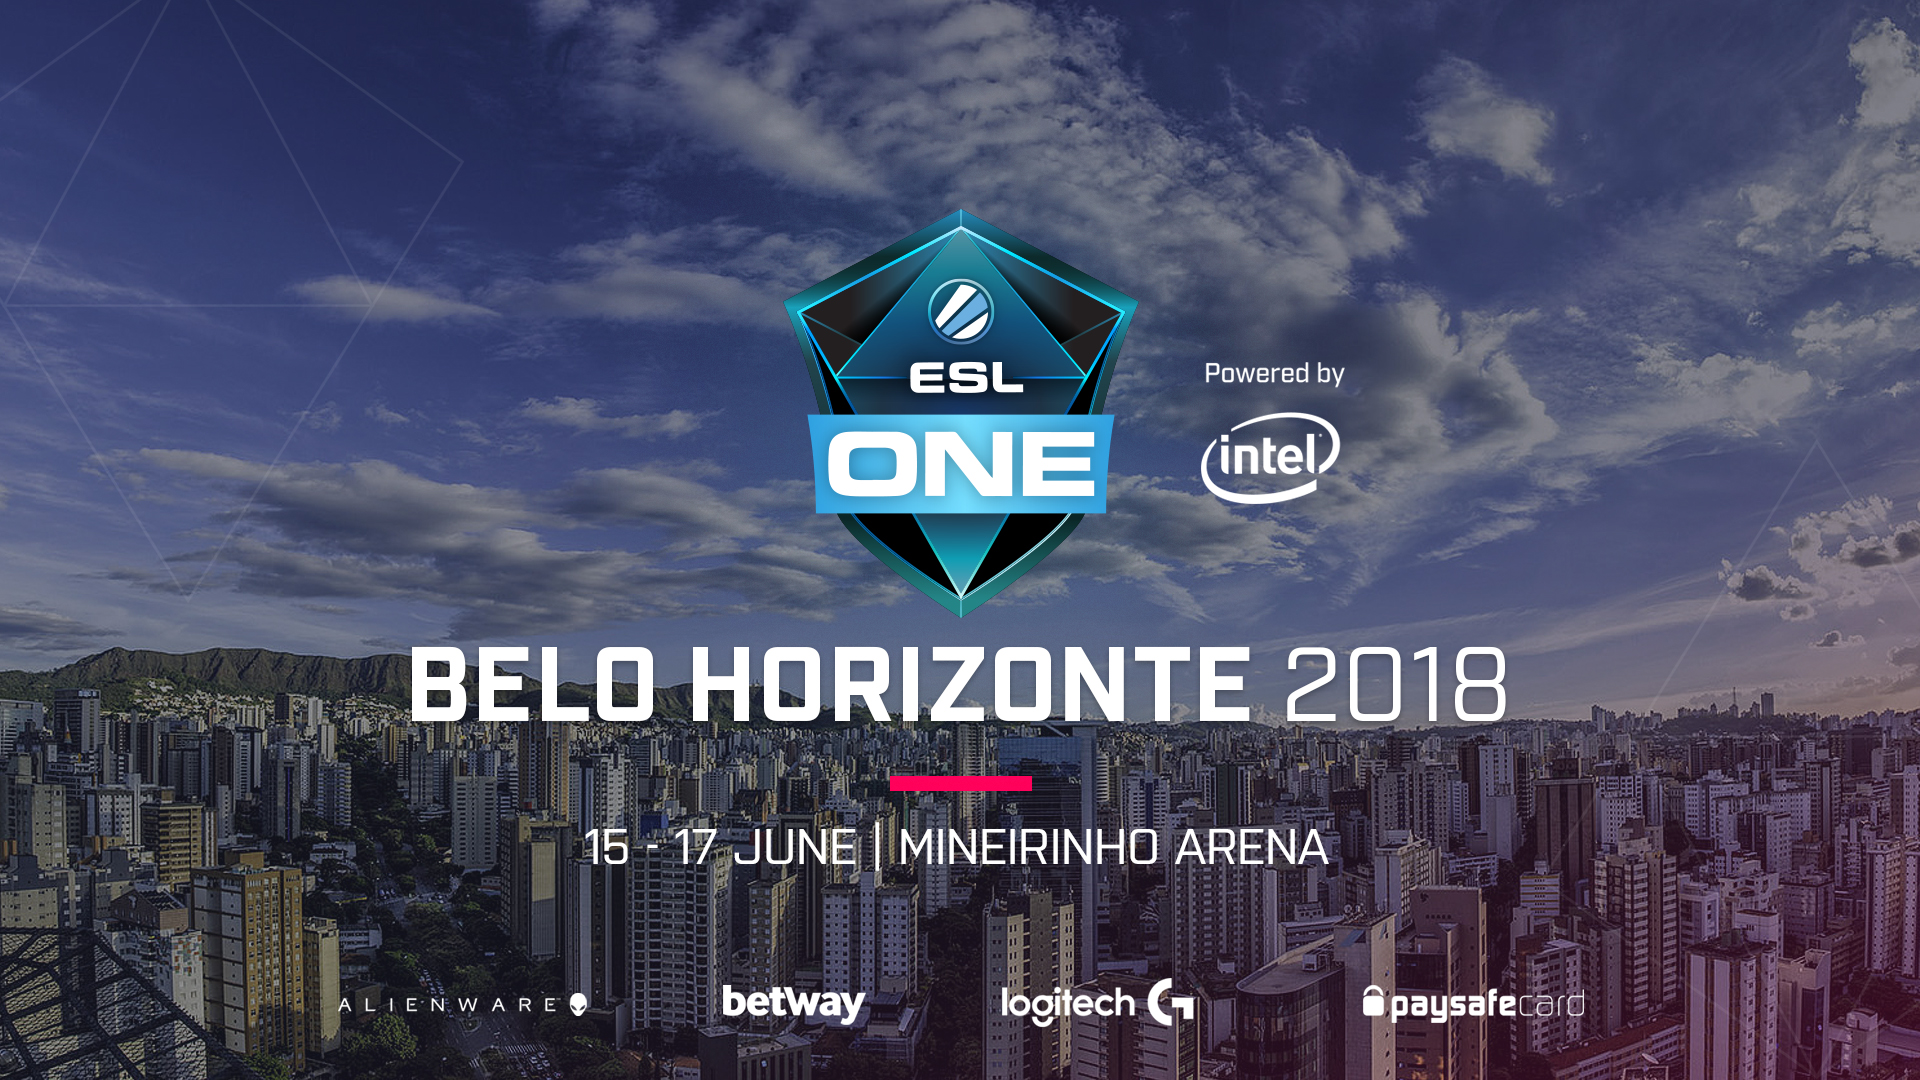 ESL One Belo Horizonte